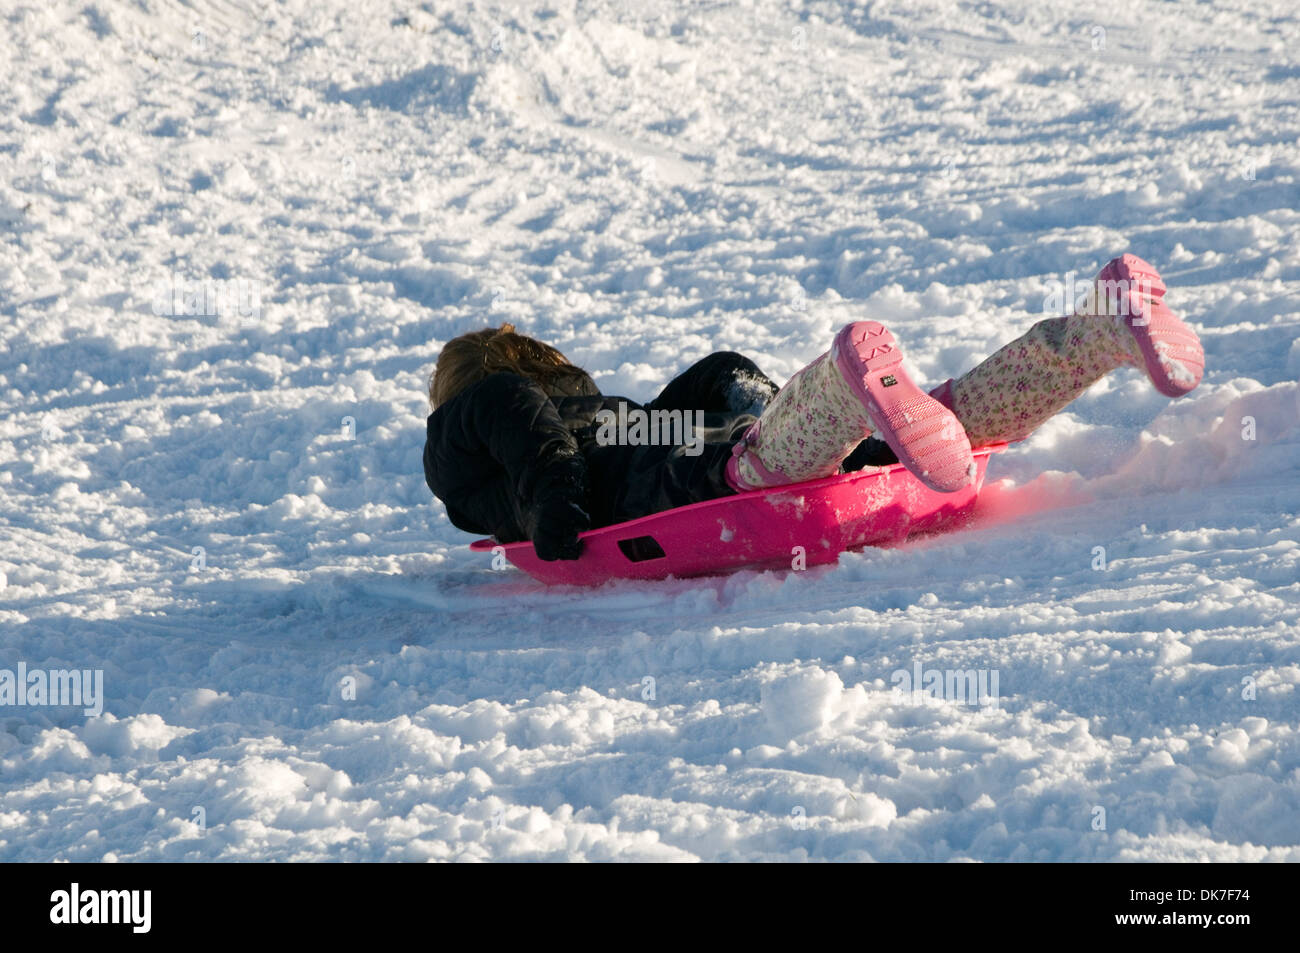 sledging uk snow sledge sledges people children kids playing in the slide cold winter weather chilly frozen snowing fall falls - Stock Image